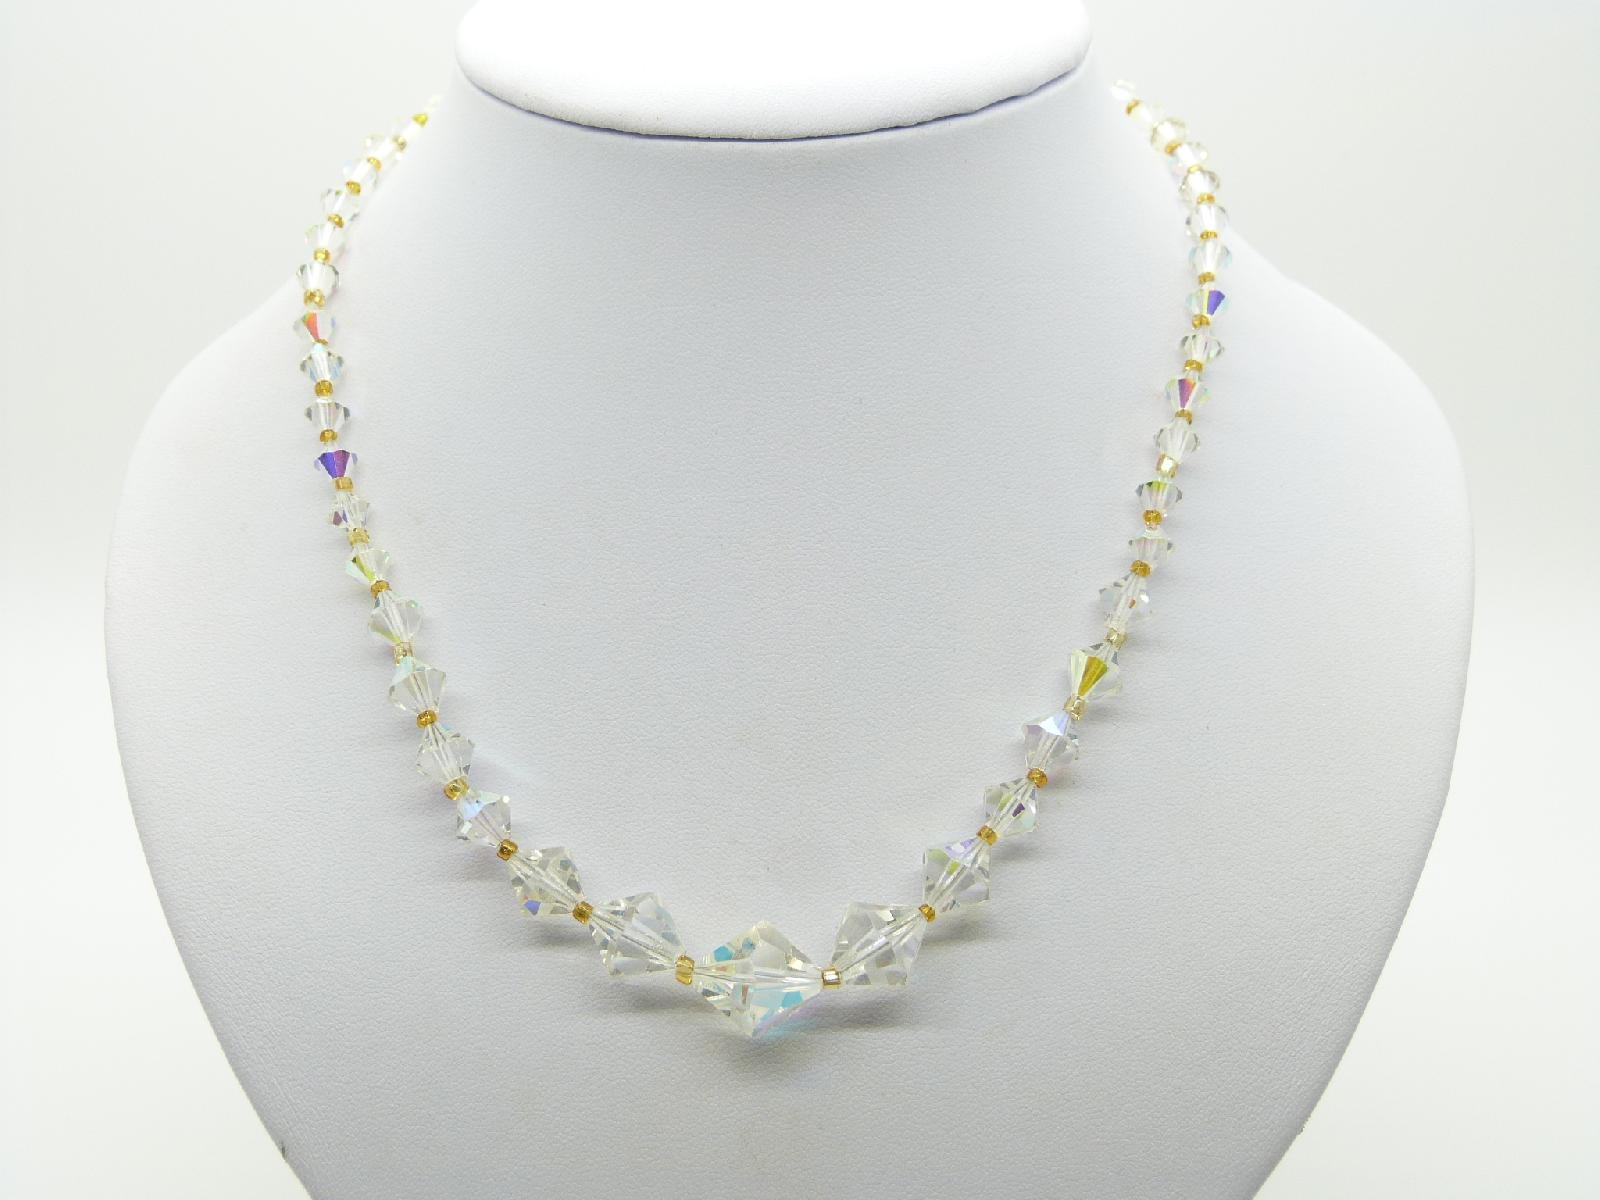 Vintage 50s Lovely AB Crystal Glass Bead Necklace Silver Diamante Clasp 44cms